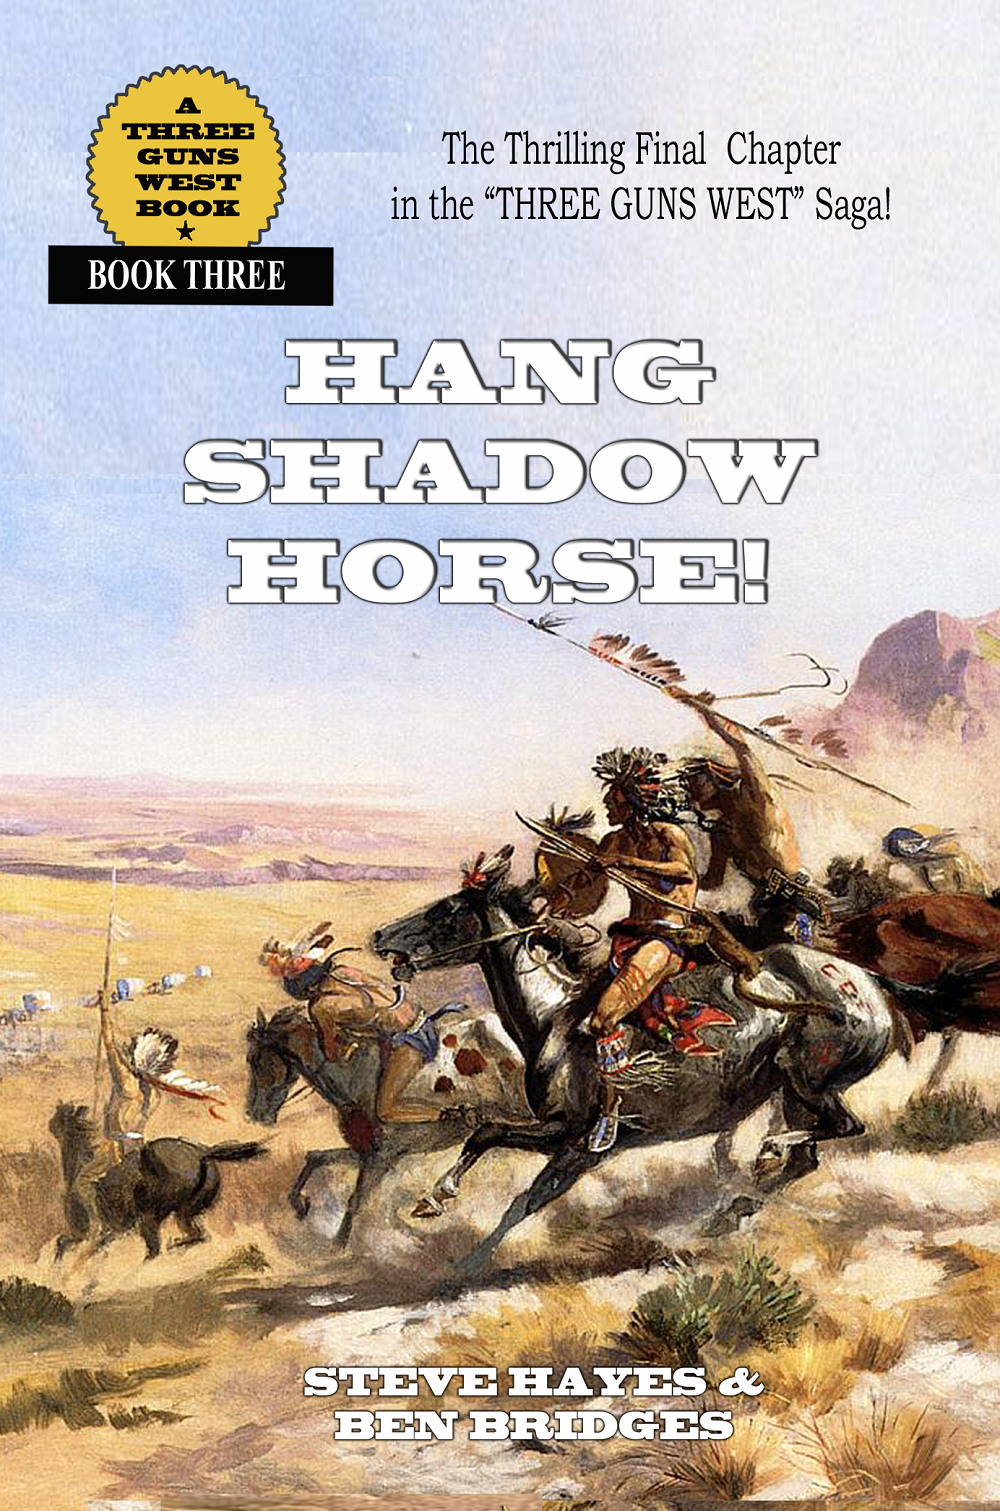 """Hang Shadow Horse"""